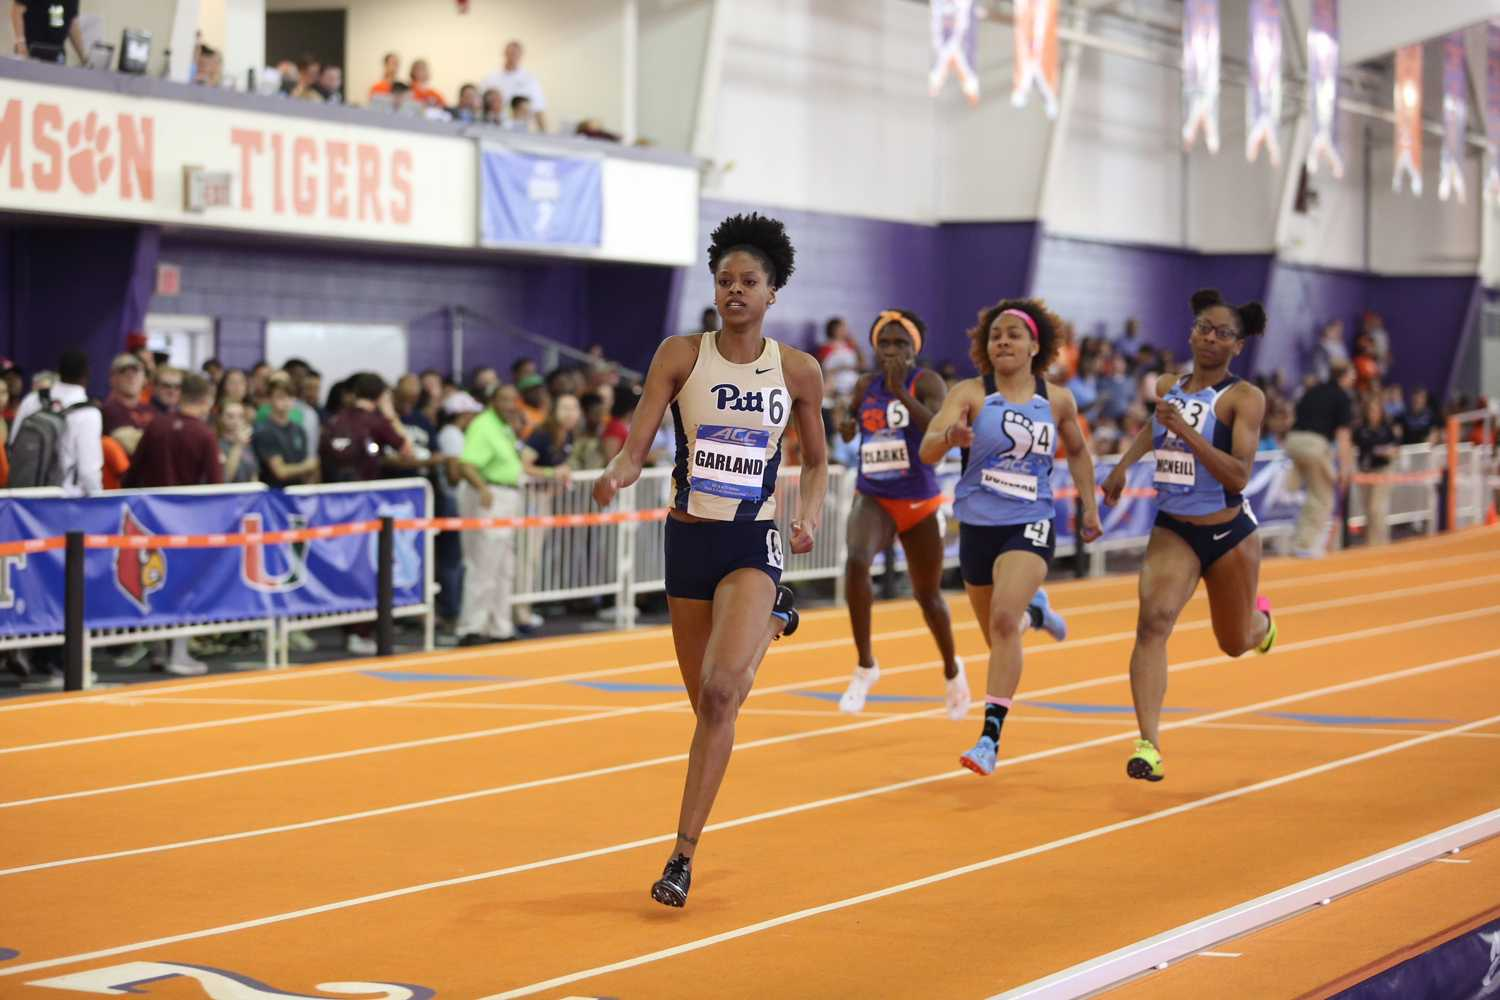 Senior Desiree Garland earned Pitt's first ACC women's indoor track and field gold medal in the 400m dash at the ACC Indoor Track and Field Championships Saturday. (Courtesy of Pitt Athletics)